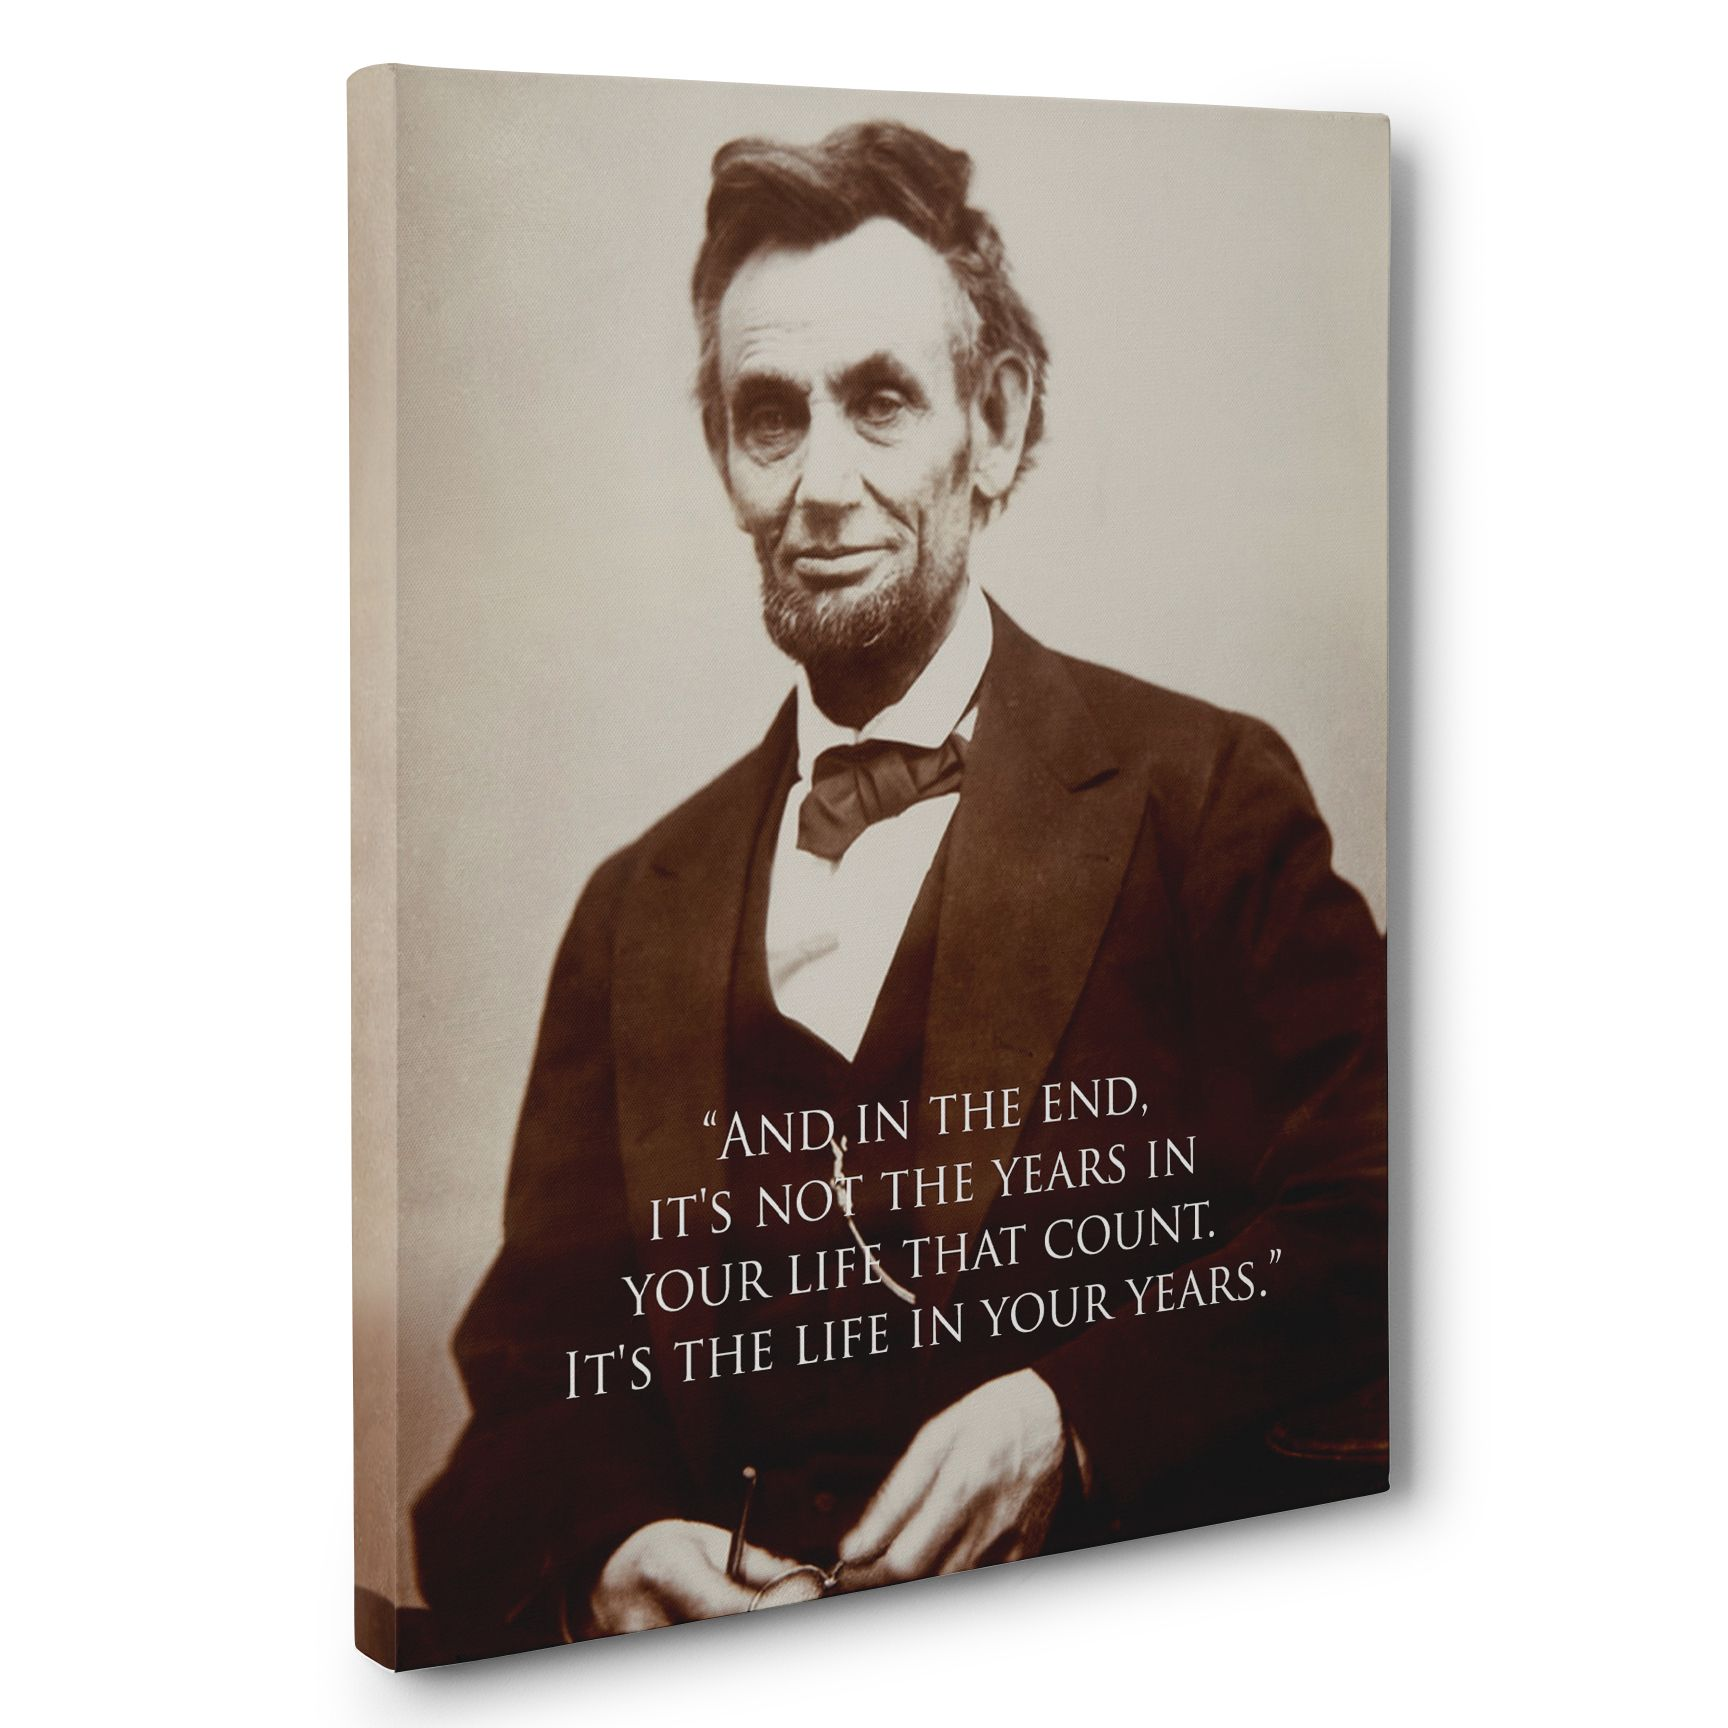 Buy A Handmade Abraham Lincoln Life Motivation Quote Canvas